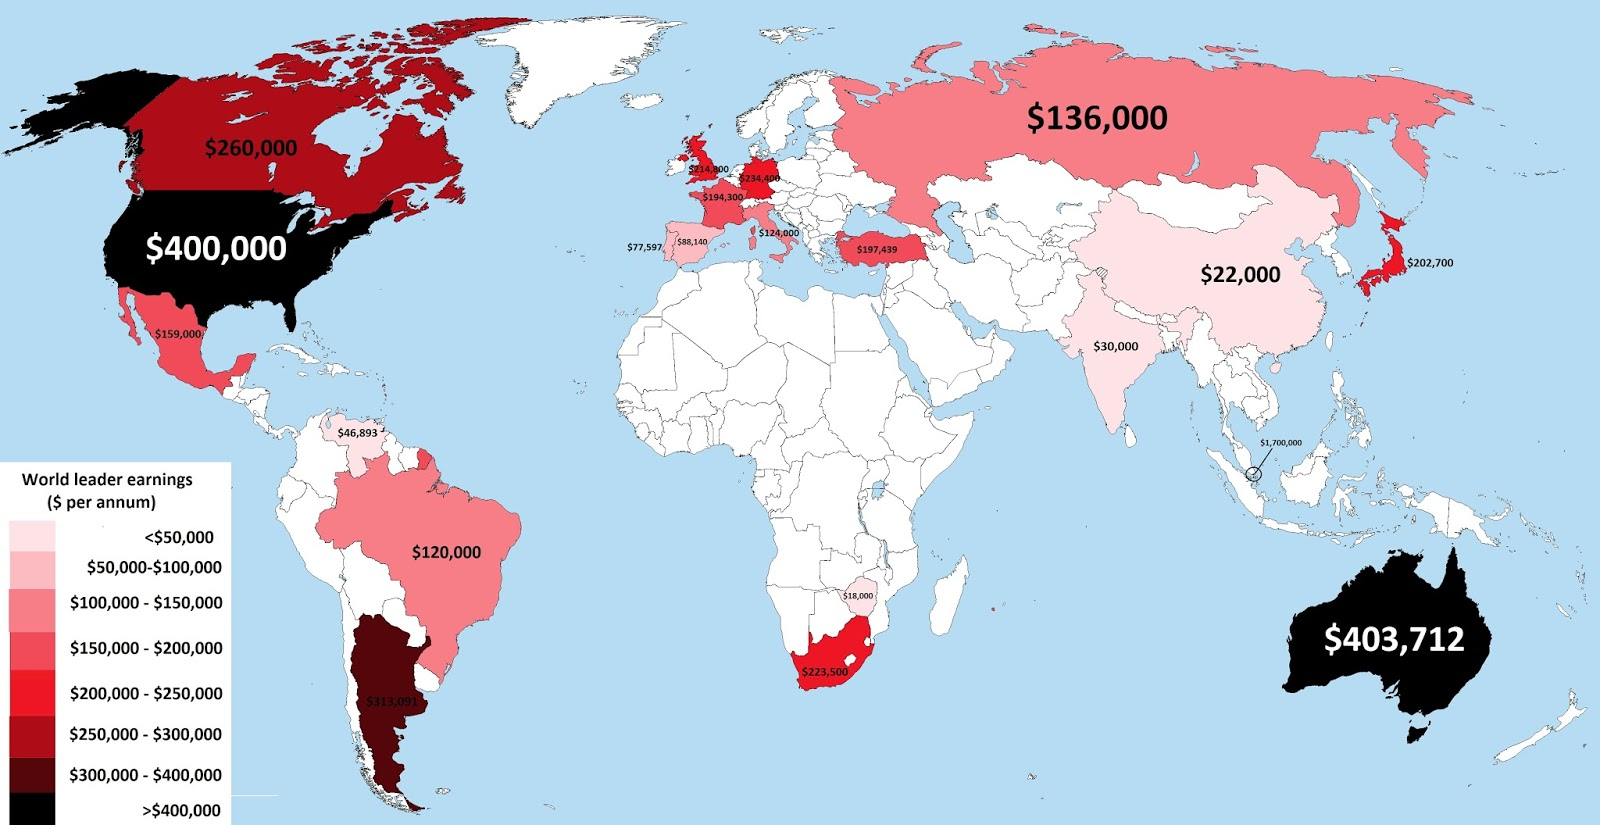 How much do world leaders earn?